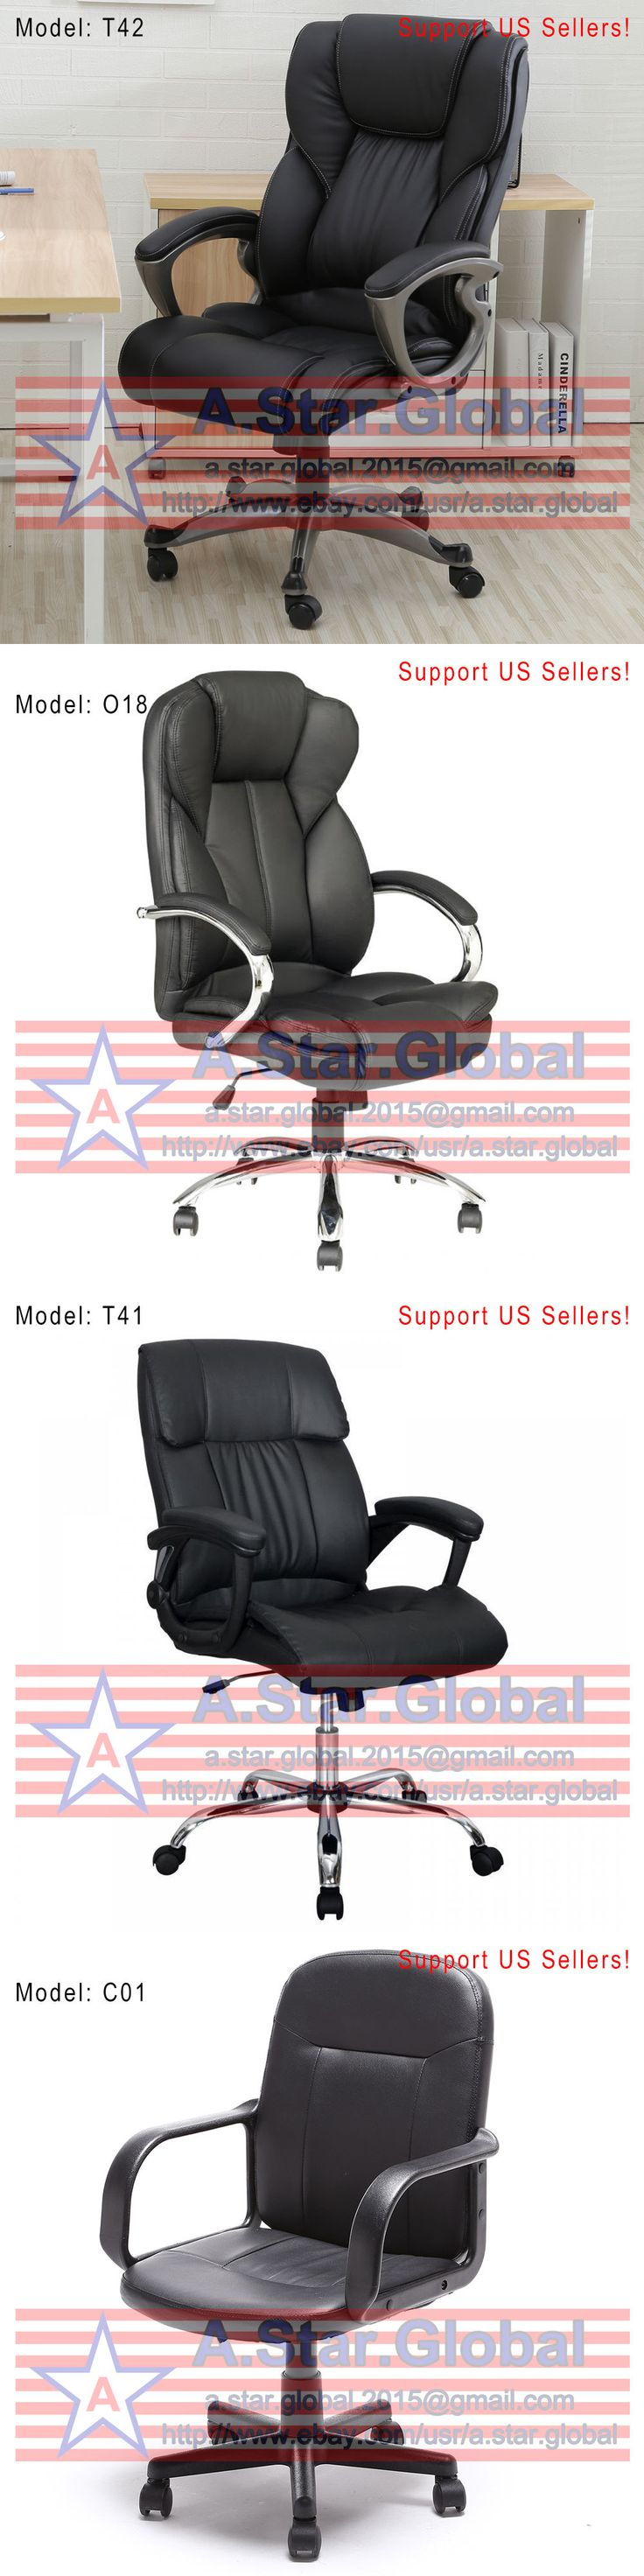 Wood swivel desk chair laquered finish warms amp padded seat ebay - Office Furniture Black Pu Leather High Back Office Chair Executive Task Ergonomic Computer Desk